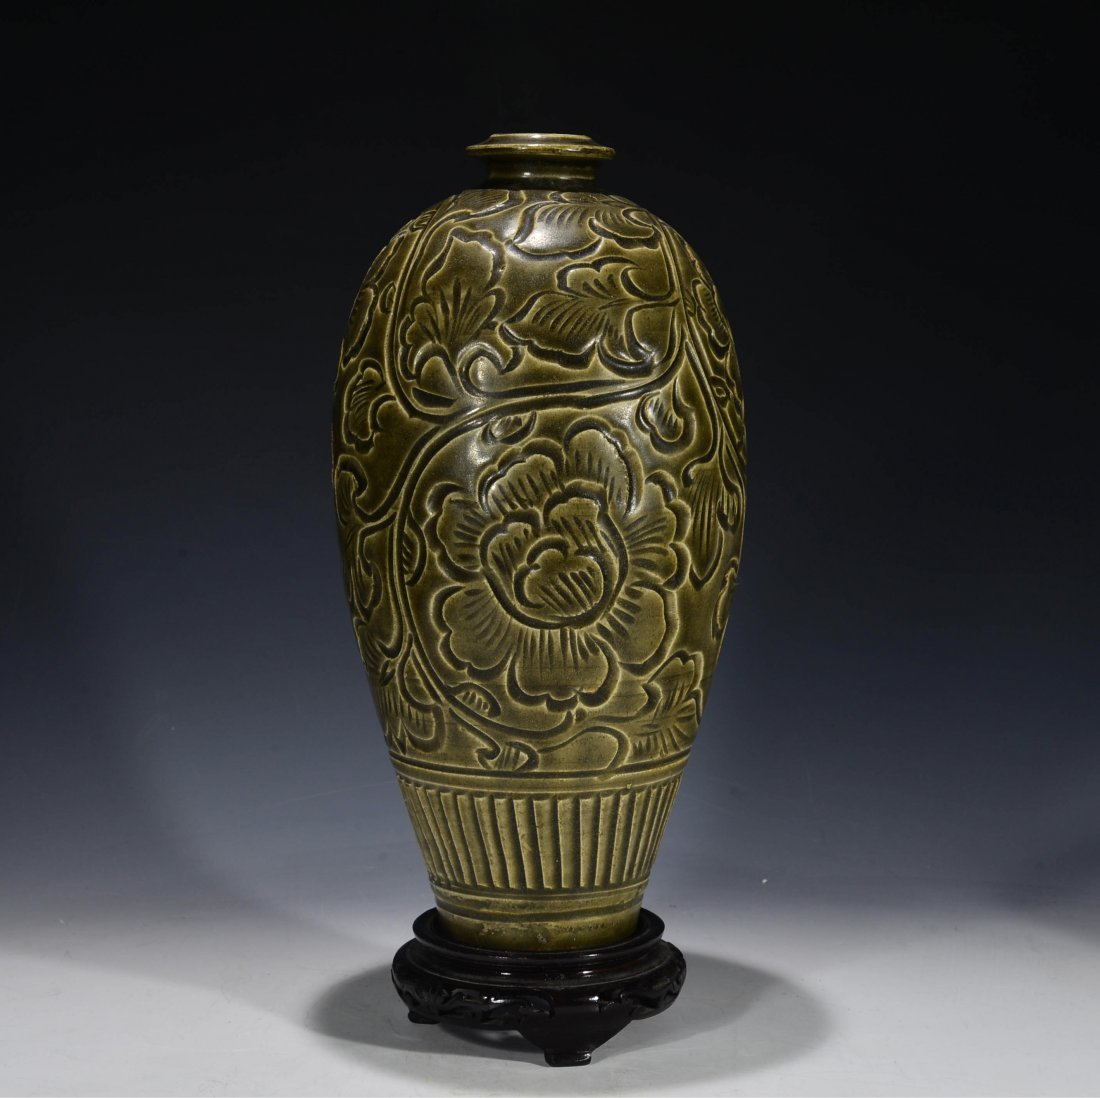 Chinese Antique Yao Zhou Ware Meiping Vase